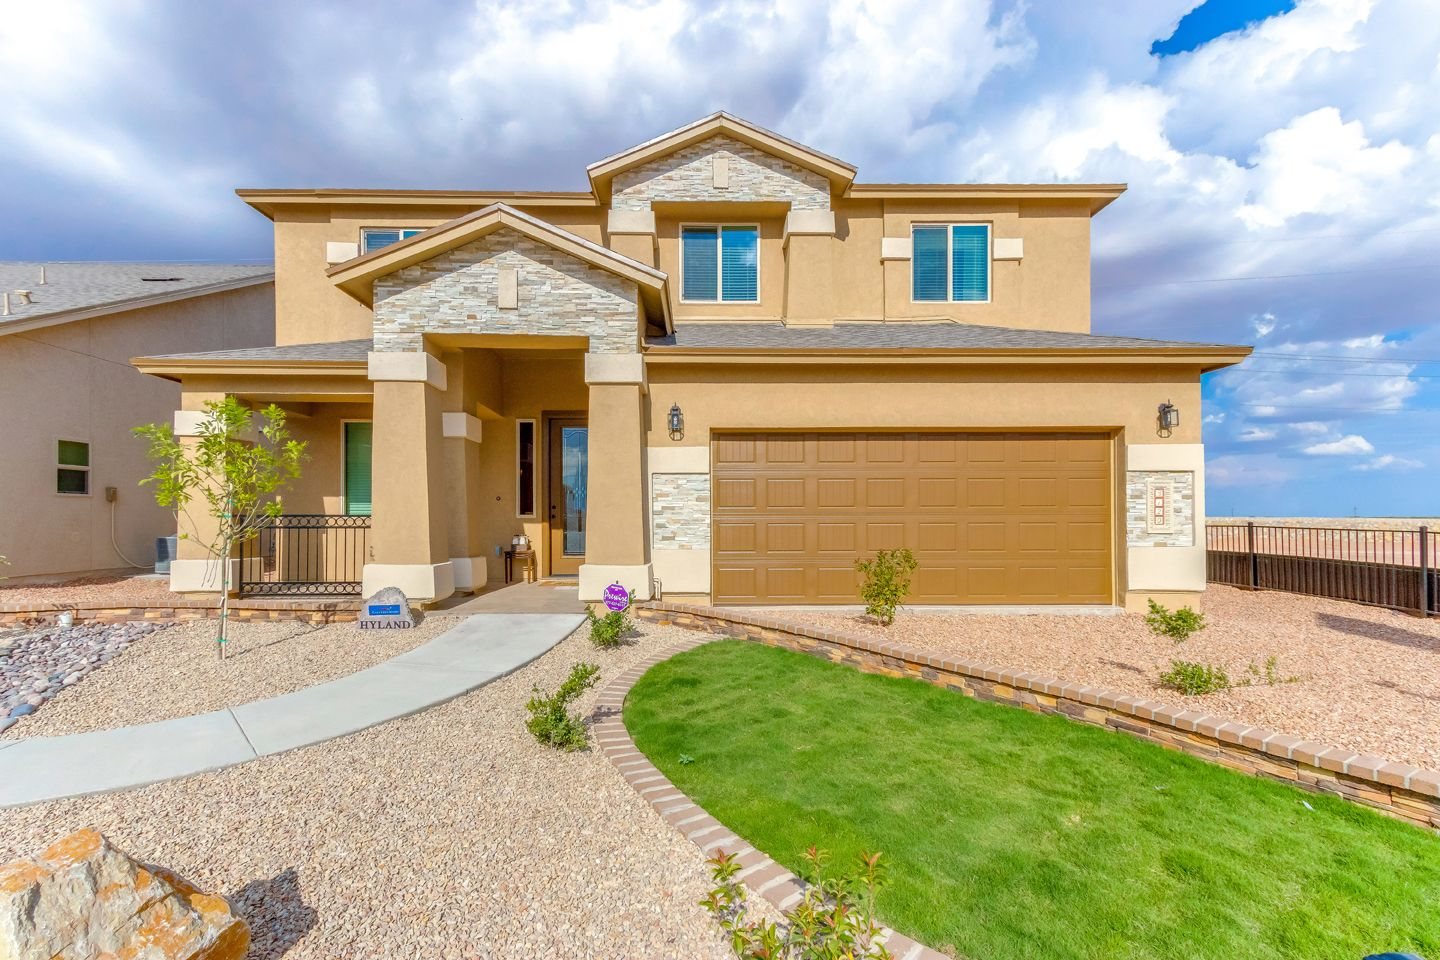 Zia Homes Inc in El Paso, Texas on pacifica homes el paso, saratoga homes el paso, fortune homes el paso, carefree homes el paso, celtic homes el paso, bella homes el paso, accent homes el paso, pointe homes el paso, theresa tropicana homes el paso, flair homes el paso, desert view homes el paso,